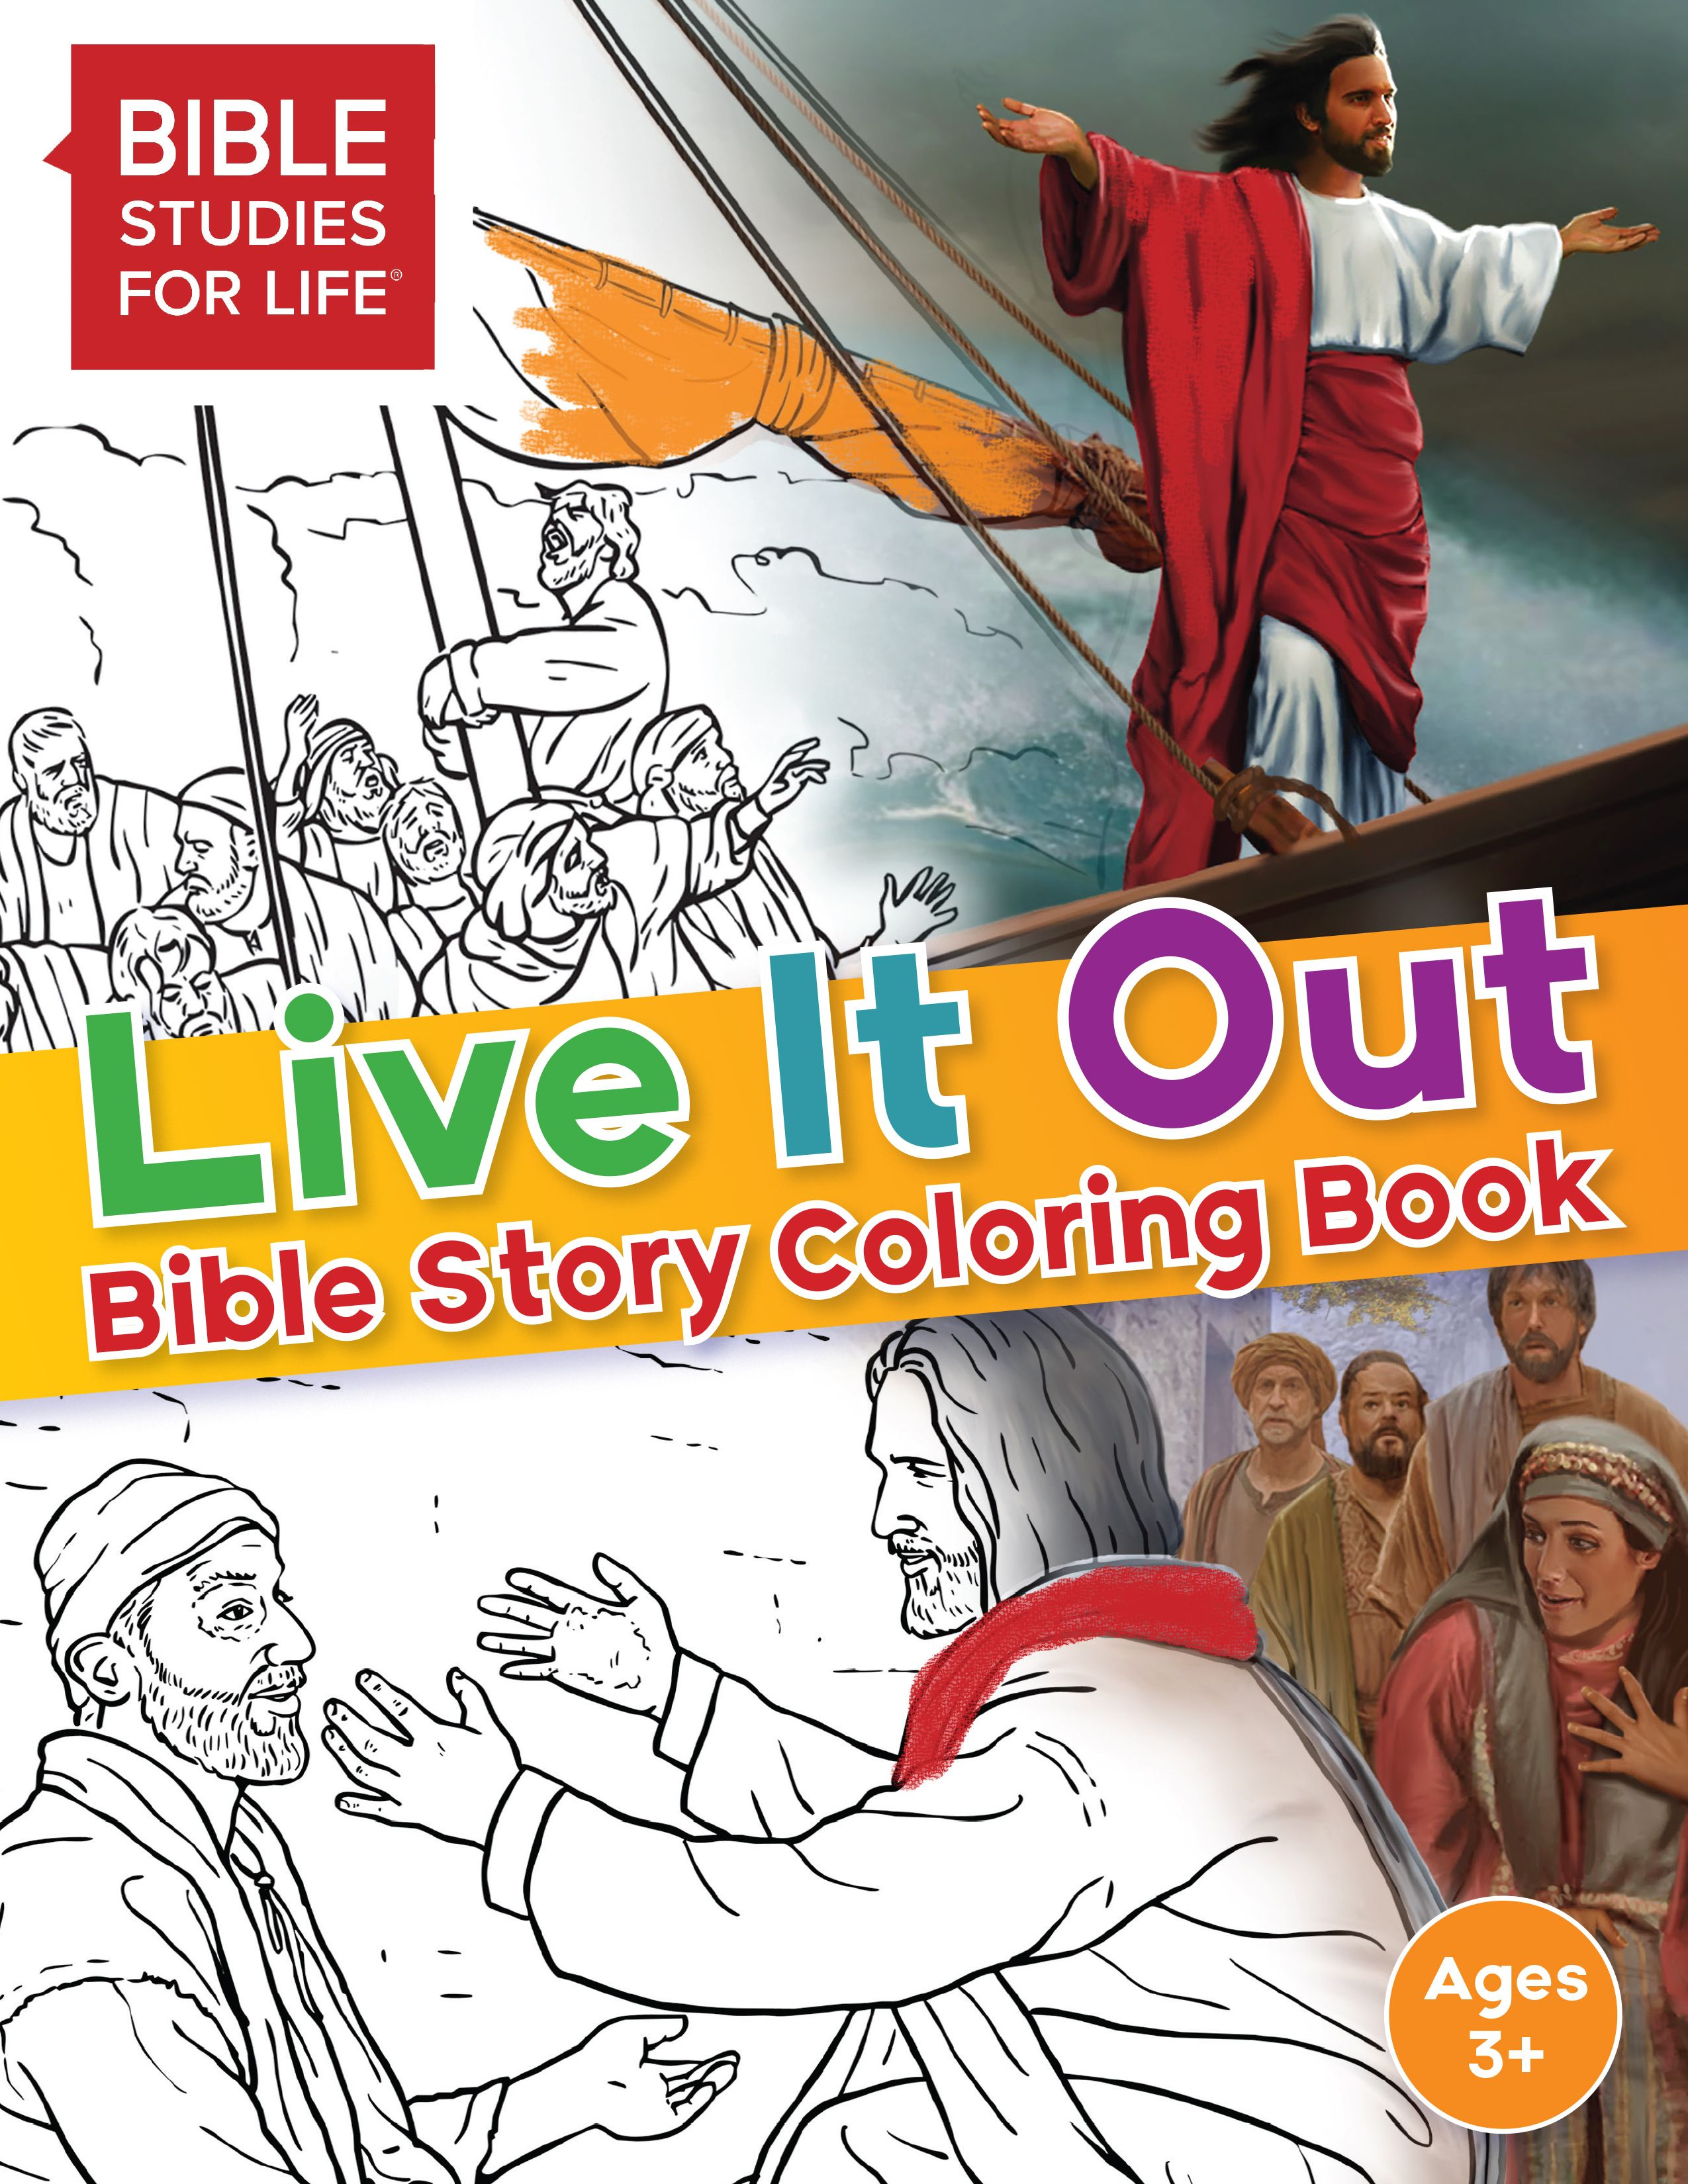 - Live It Out Bible Story Coloring Book - B&H Publishing